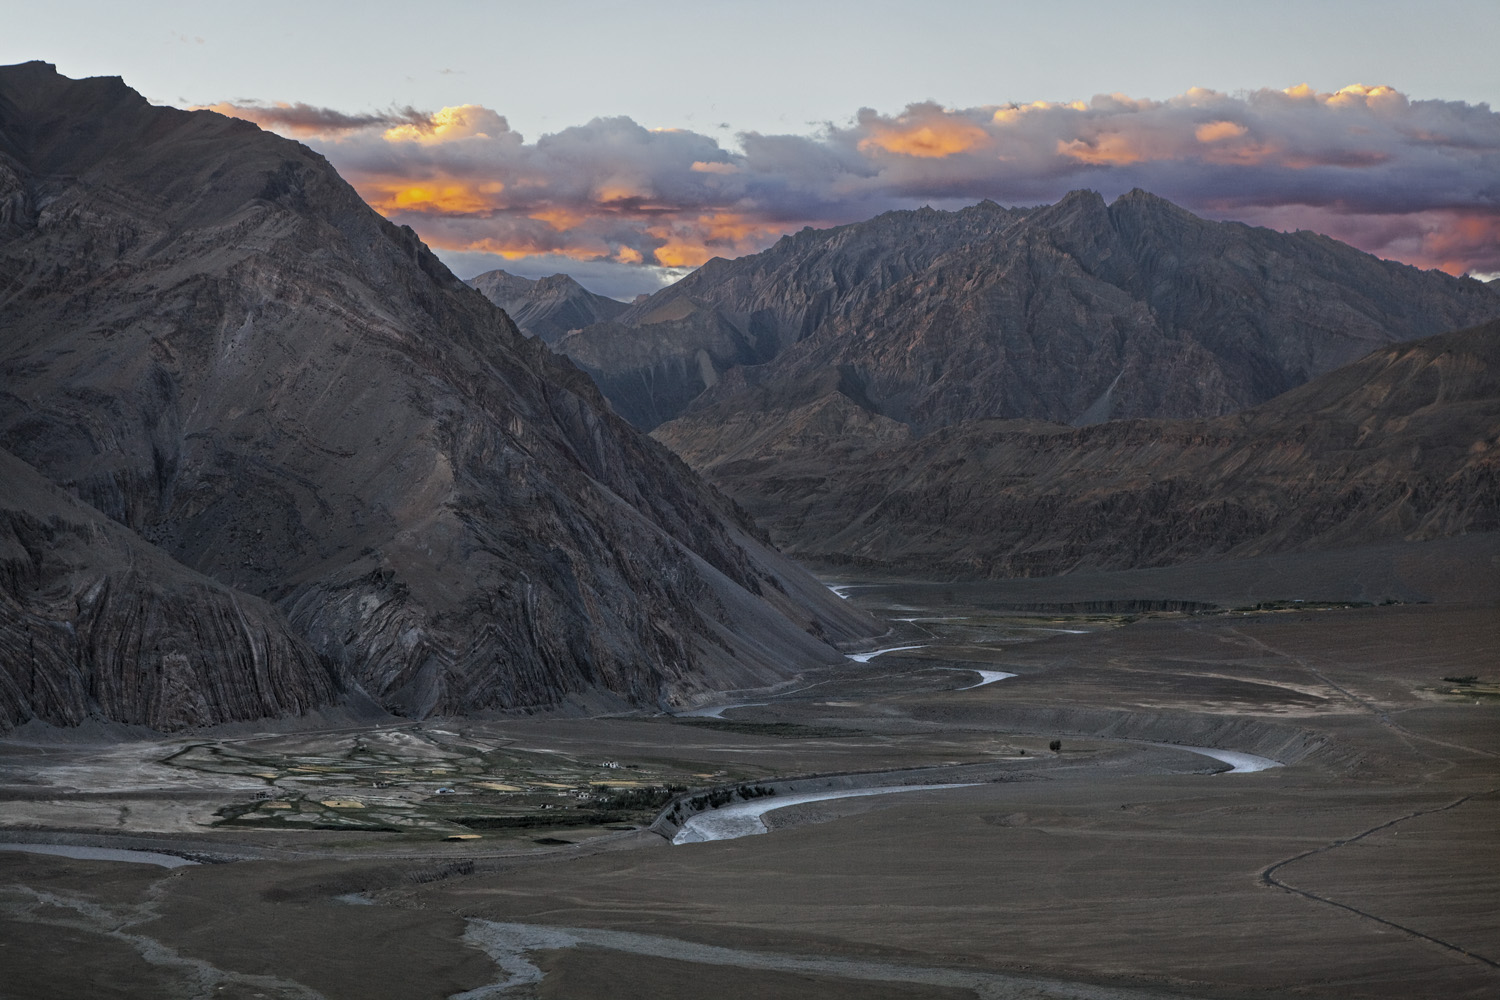 Zanskar River, Ladakh, India